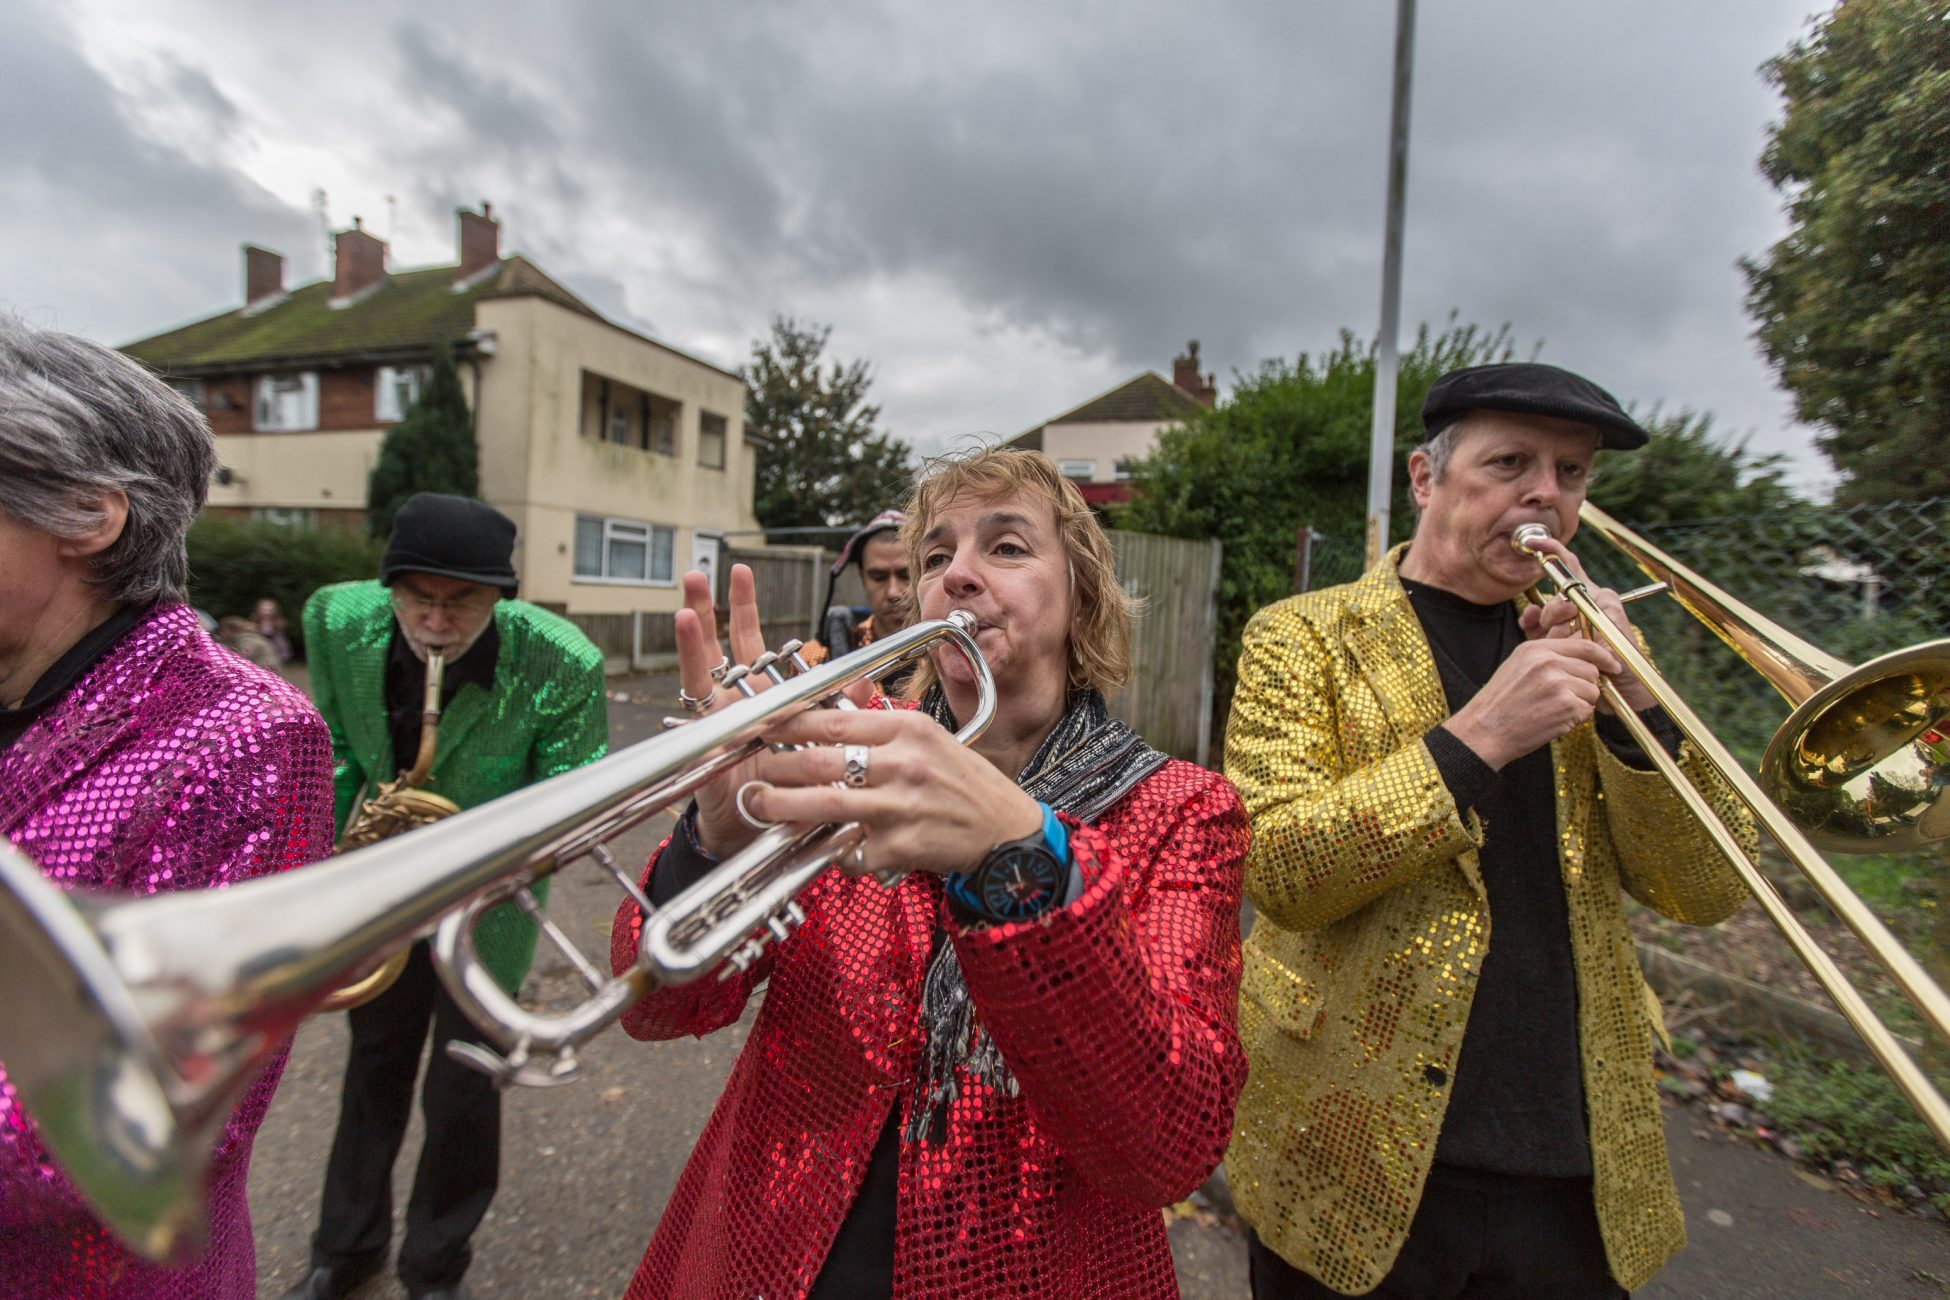 A photo of four people standing in a residential street and wearing bright sequin jackets, one pink, one gree, one red and one gold. They are each playing a different brass instrument.